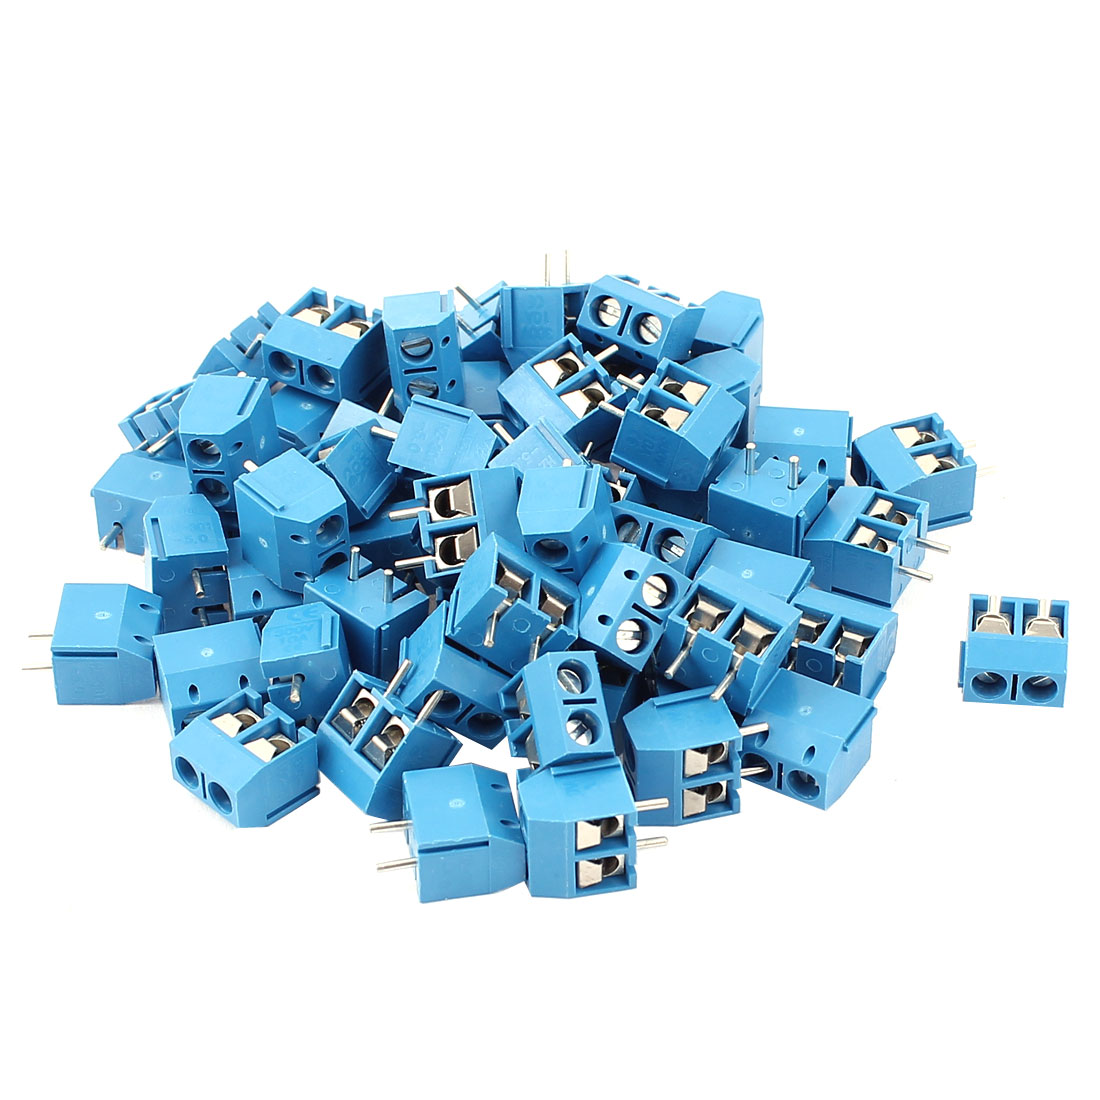 60Pcs AC 300V 10A PCB Terminal Block Connector 5.0mm Pitch Blue